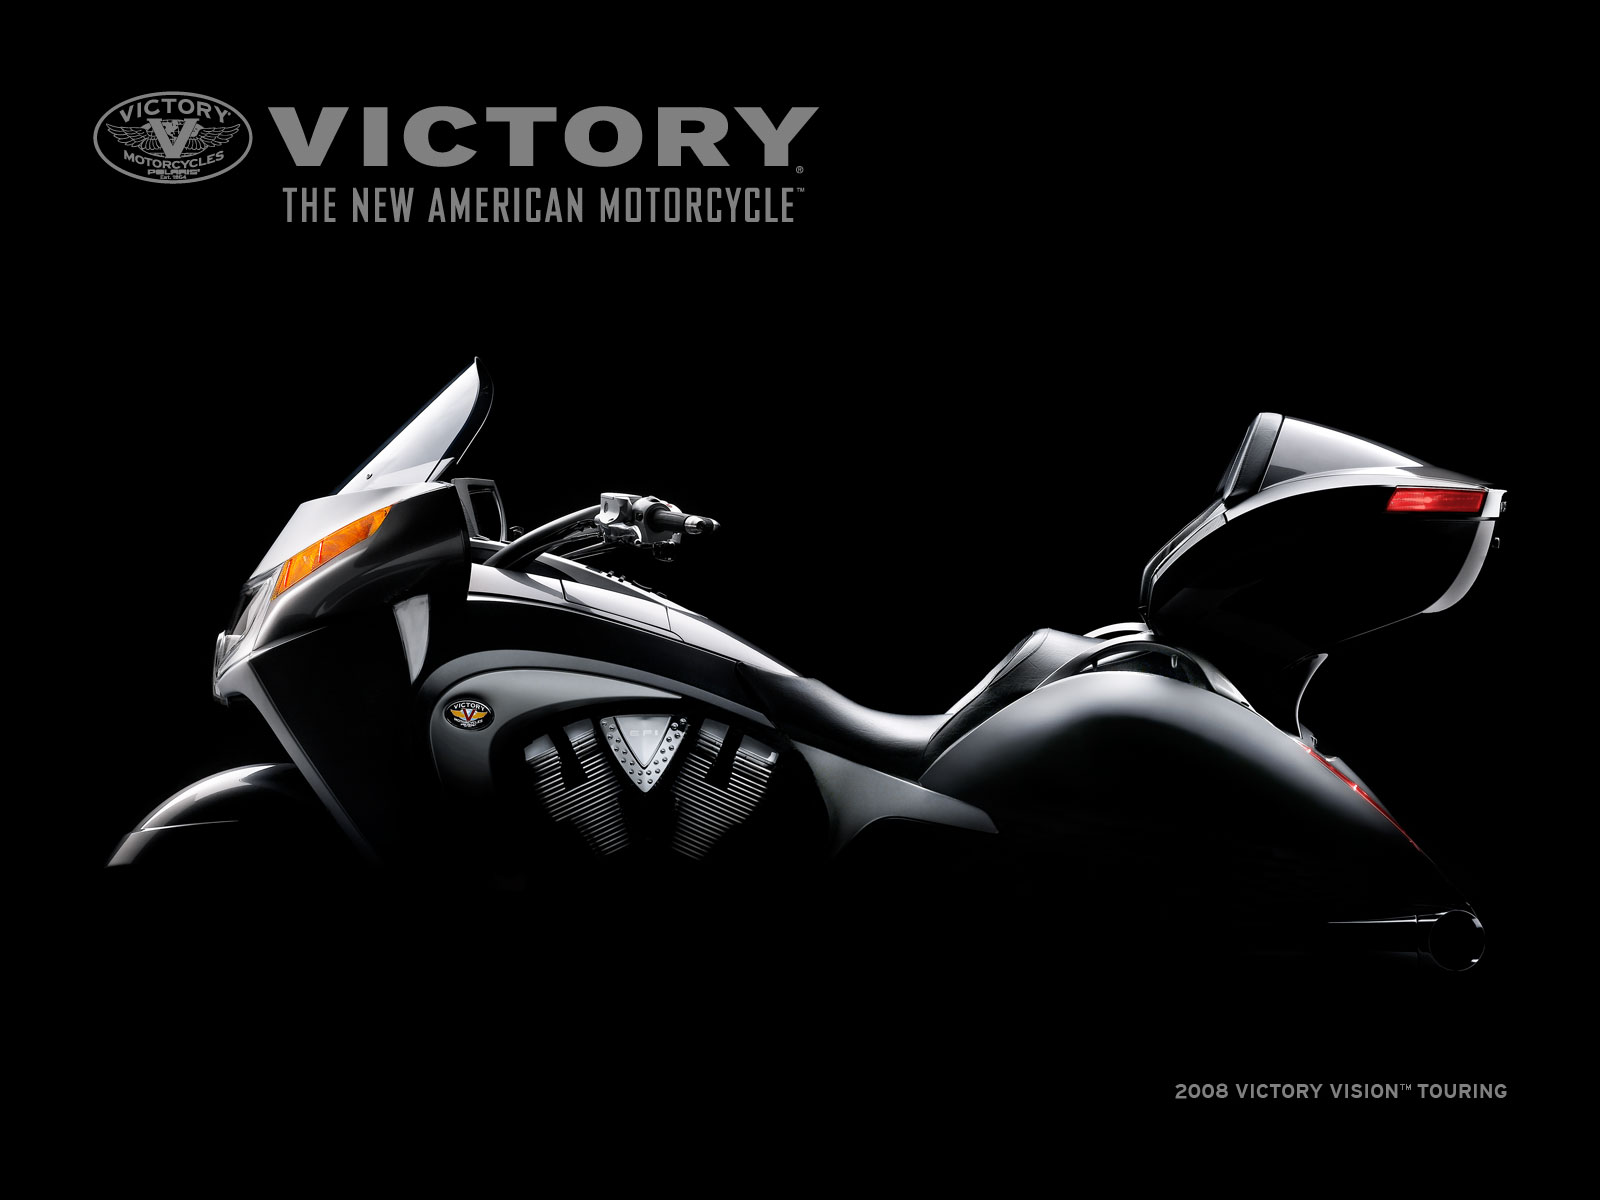 Victory Vision Wallpaper Victory Vision Pinterest 1600x1200